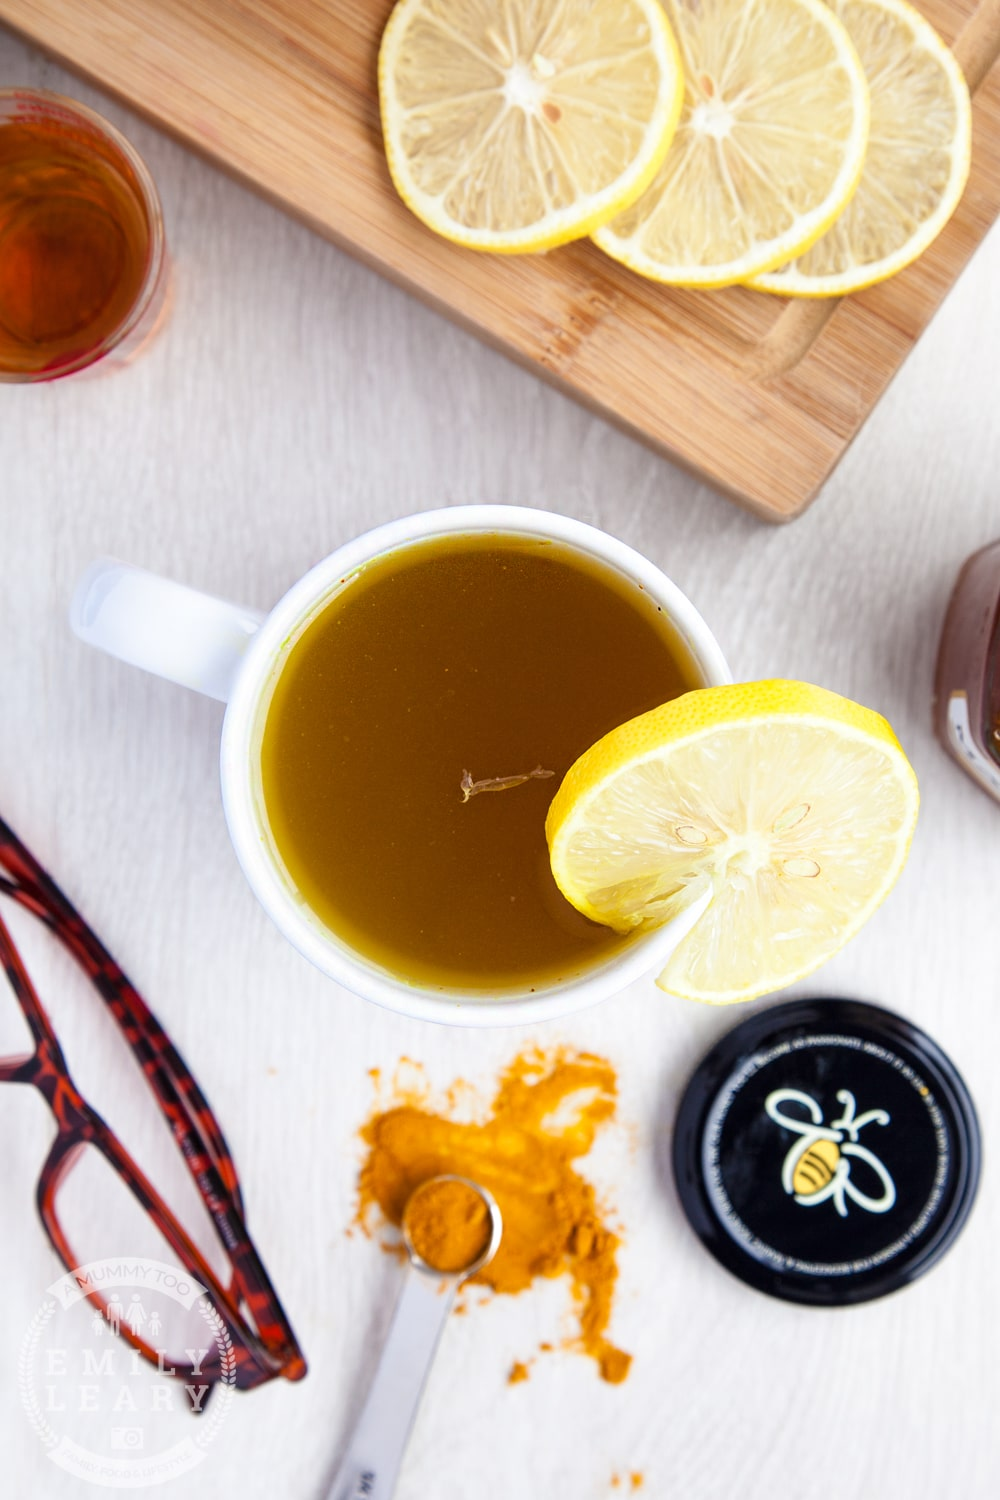 Honey & turmeric hot toddy. It's made from 1/4 tsp peppery turmeric for its reported anti-inflammatory properties and a good squeeze of fresh lemon for flavour and, some say, natural antiseptic.